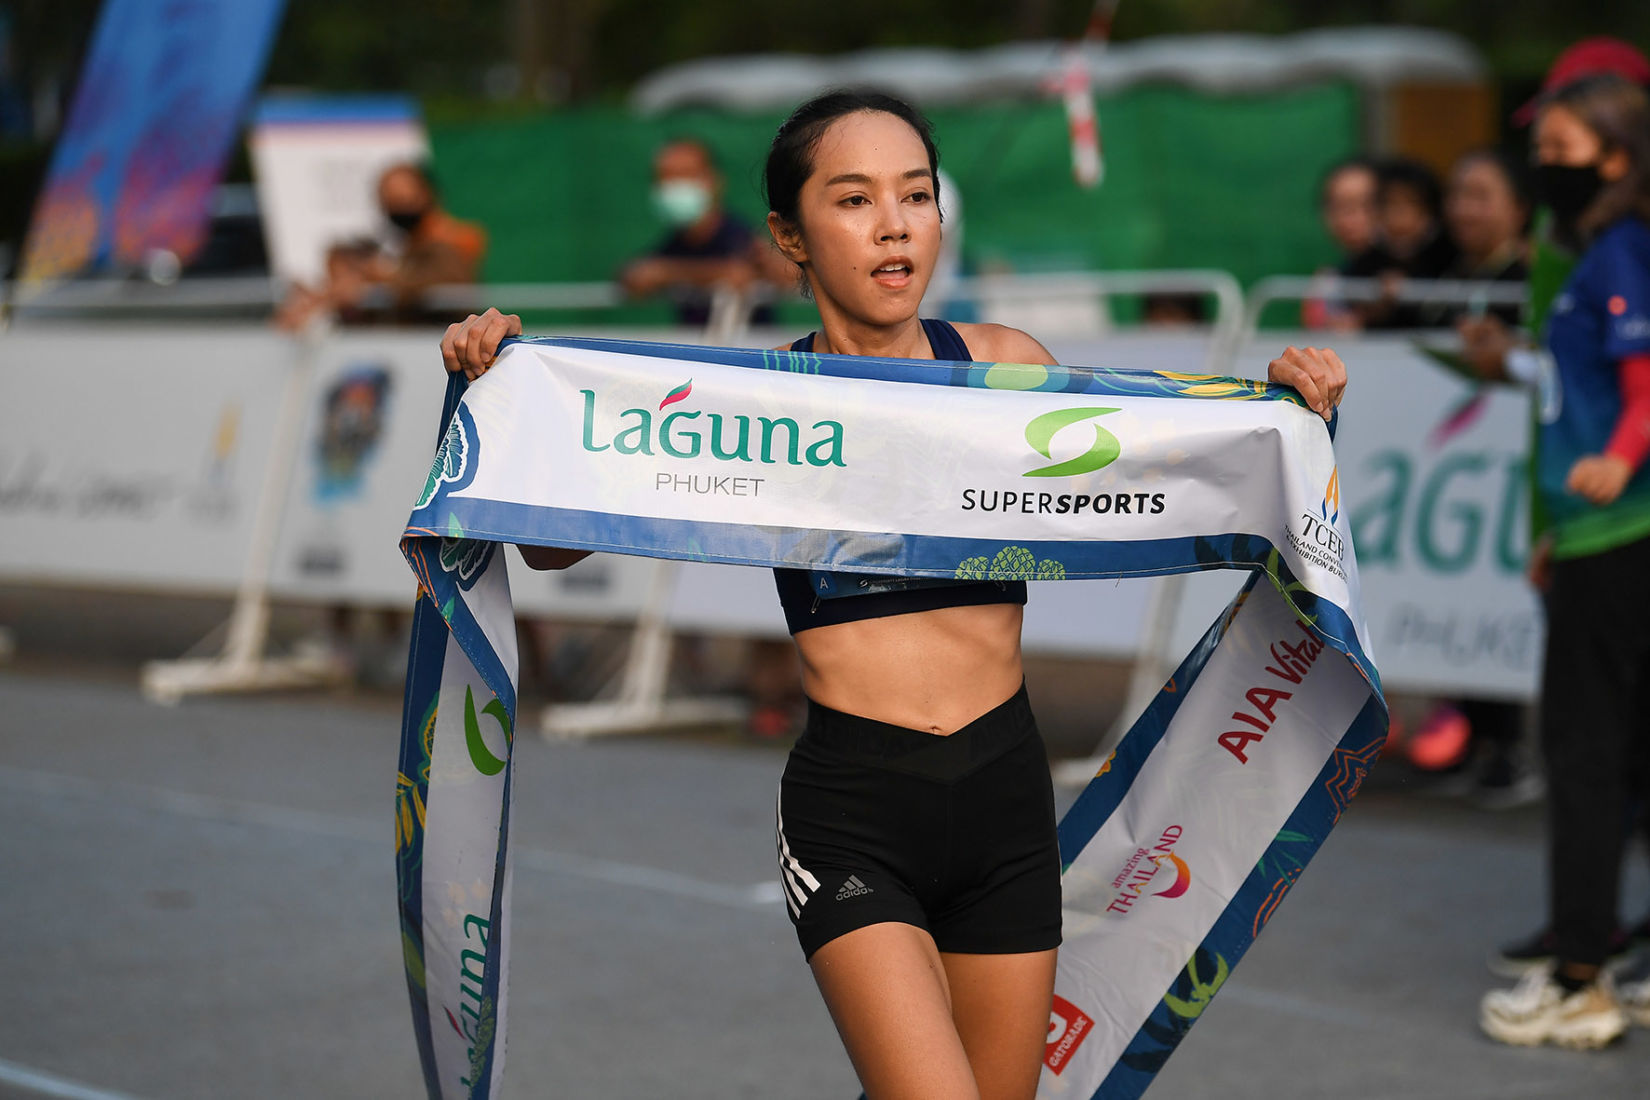 The 2020 Supersports Laguna Phuket Marathon has been run and won, despite all the challenges   News by Thaiger